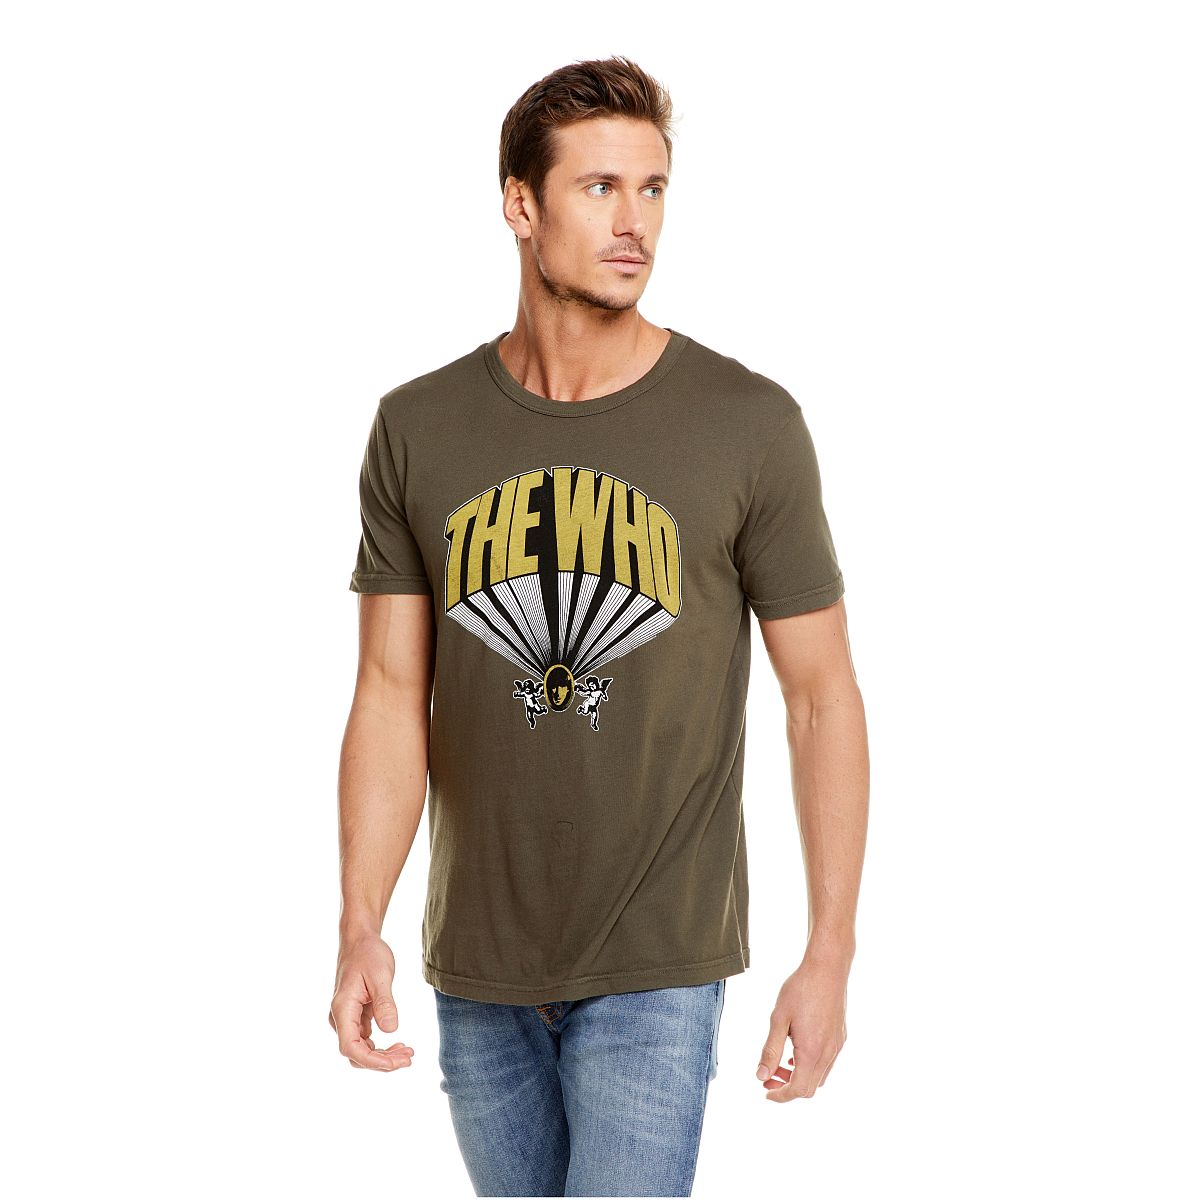 The Who Lily Drums T-Shirt